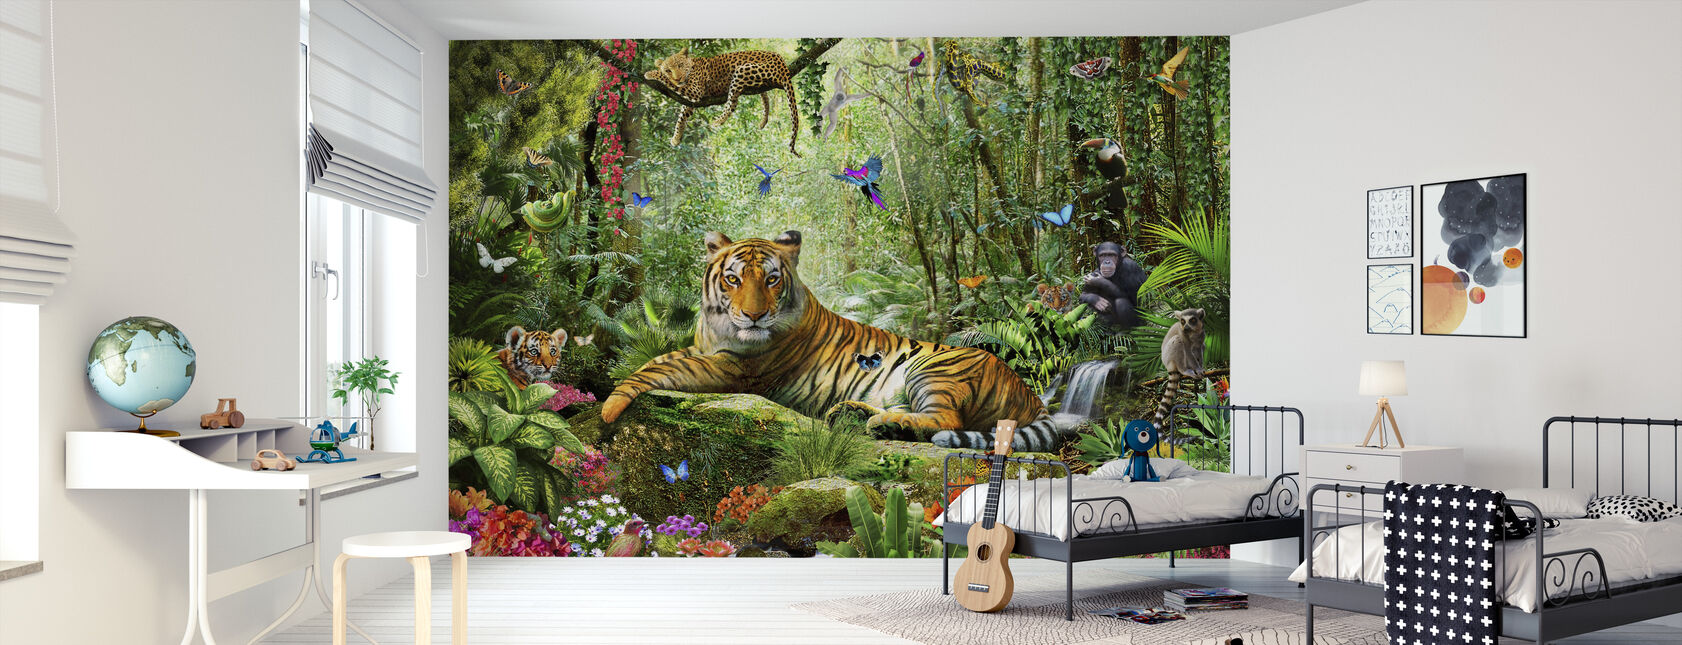 Tijger in de jungle - Behang - Kinderkamer